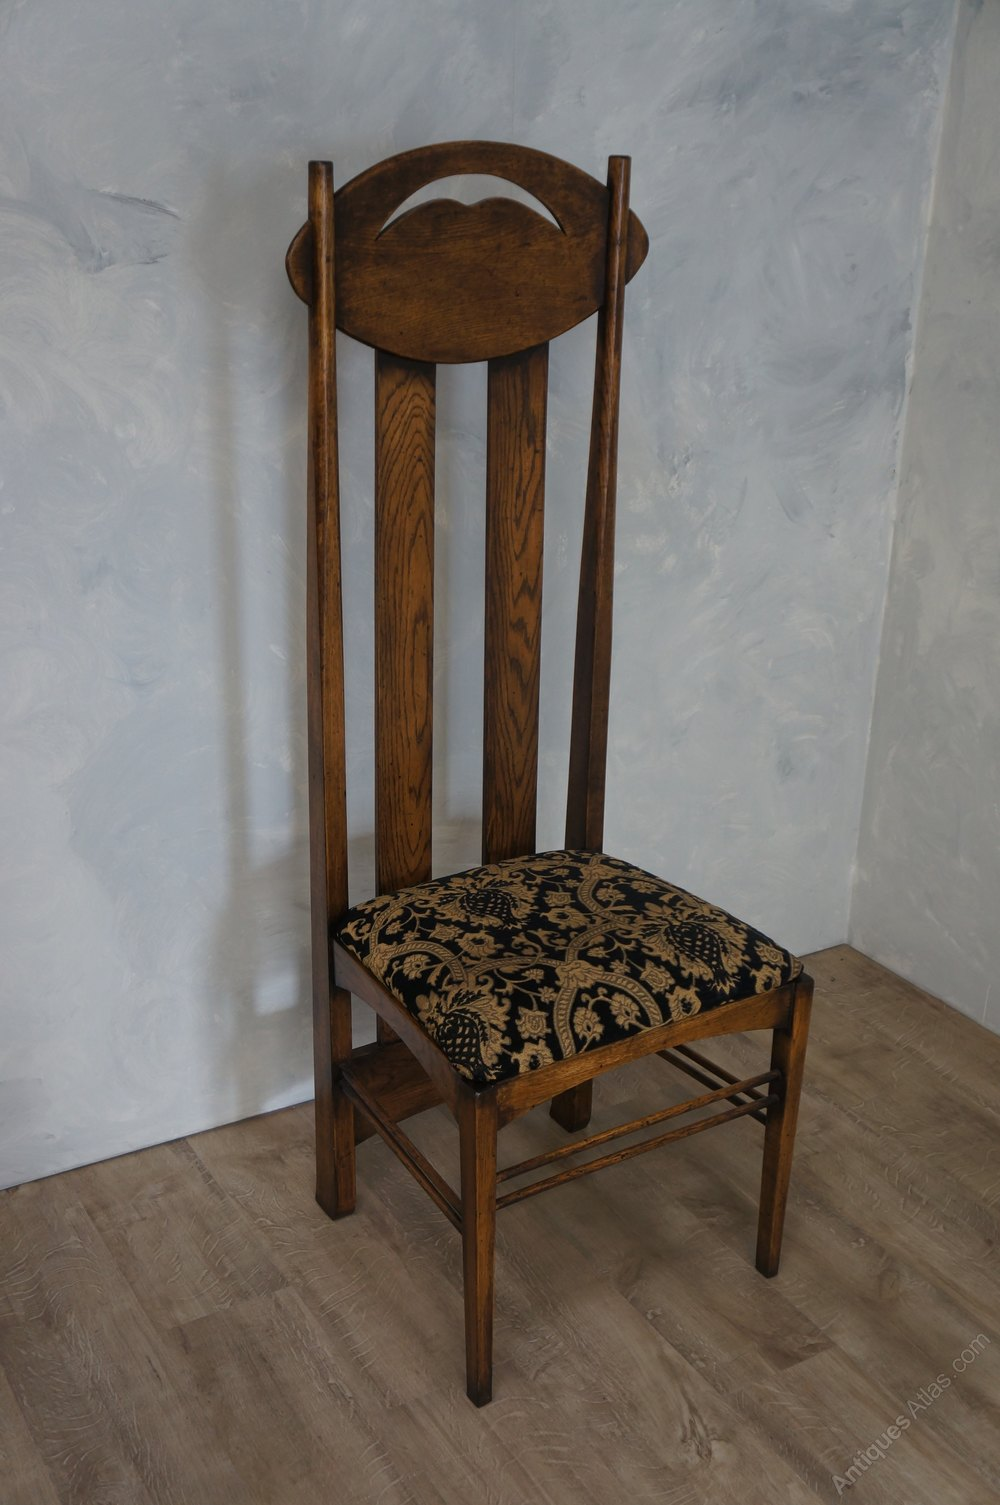 dining room chair bottom covers image early 20th century 6 mackintosh argyle chairs - antiques atlas